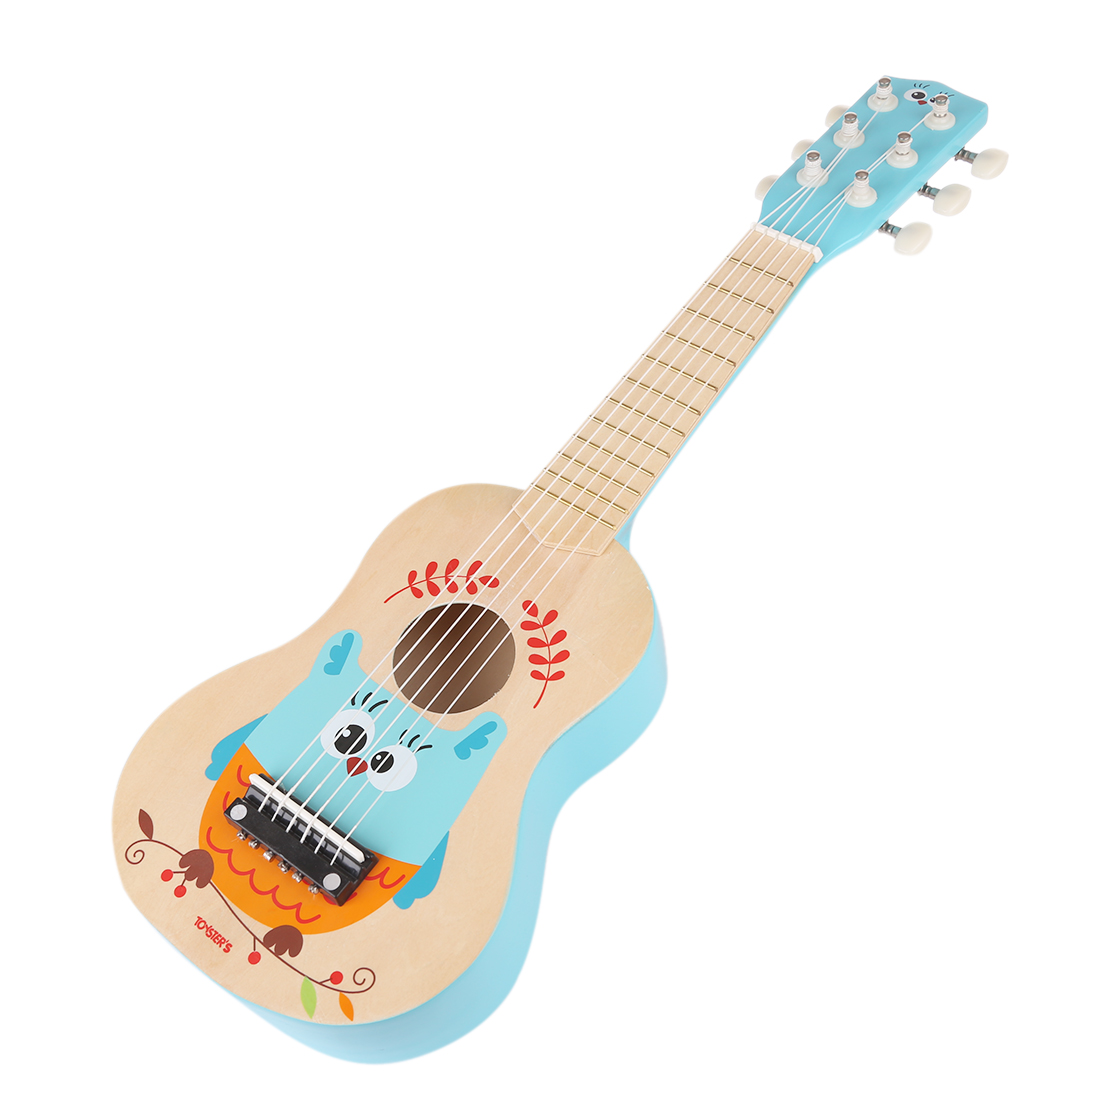 NFSTRIKE 21 Inches 6 Strings Musical Instrument Guitar Gift For Children Plastic Kid Baby Girls Guitar Toy  - Owl Pattern